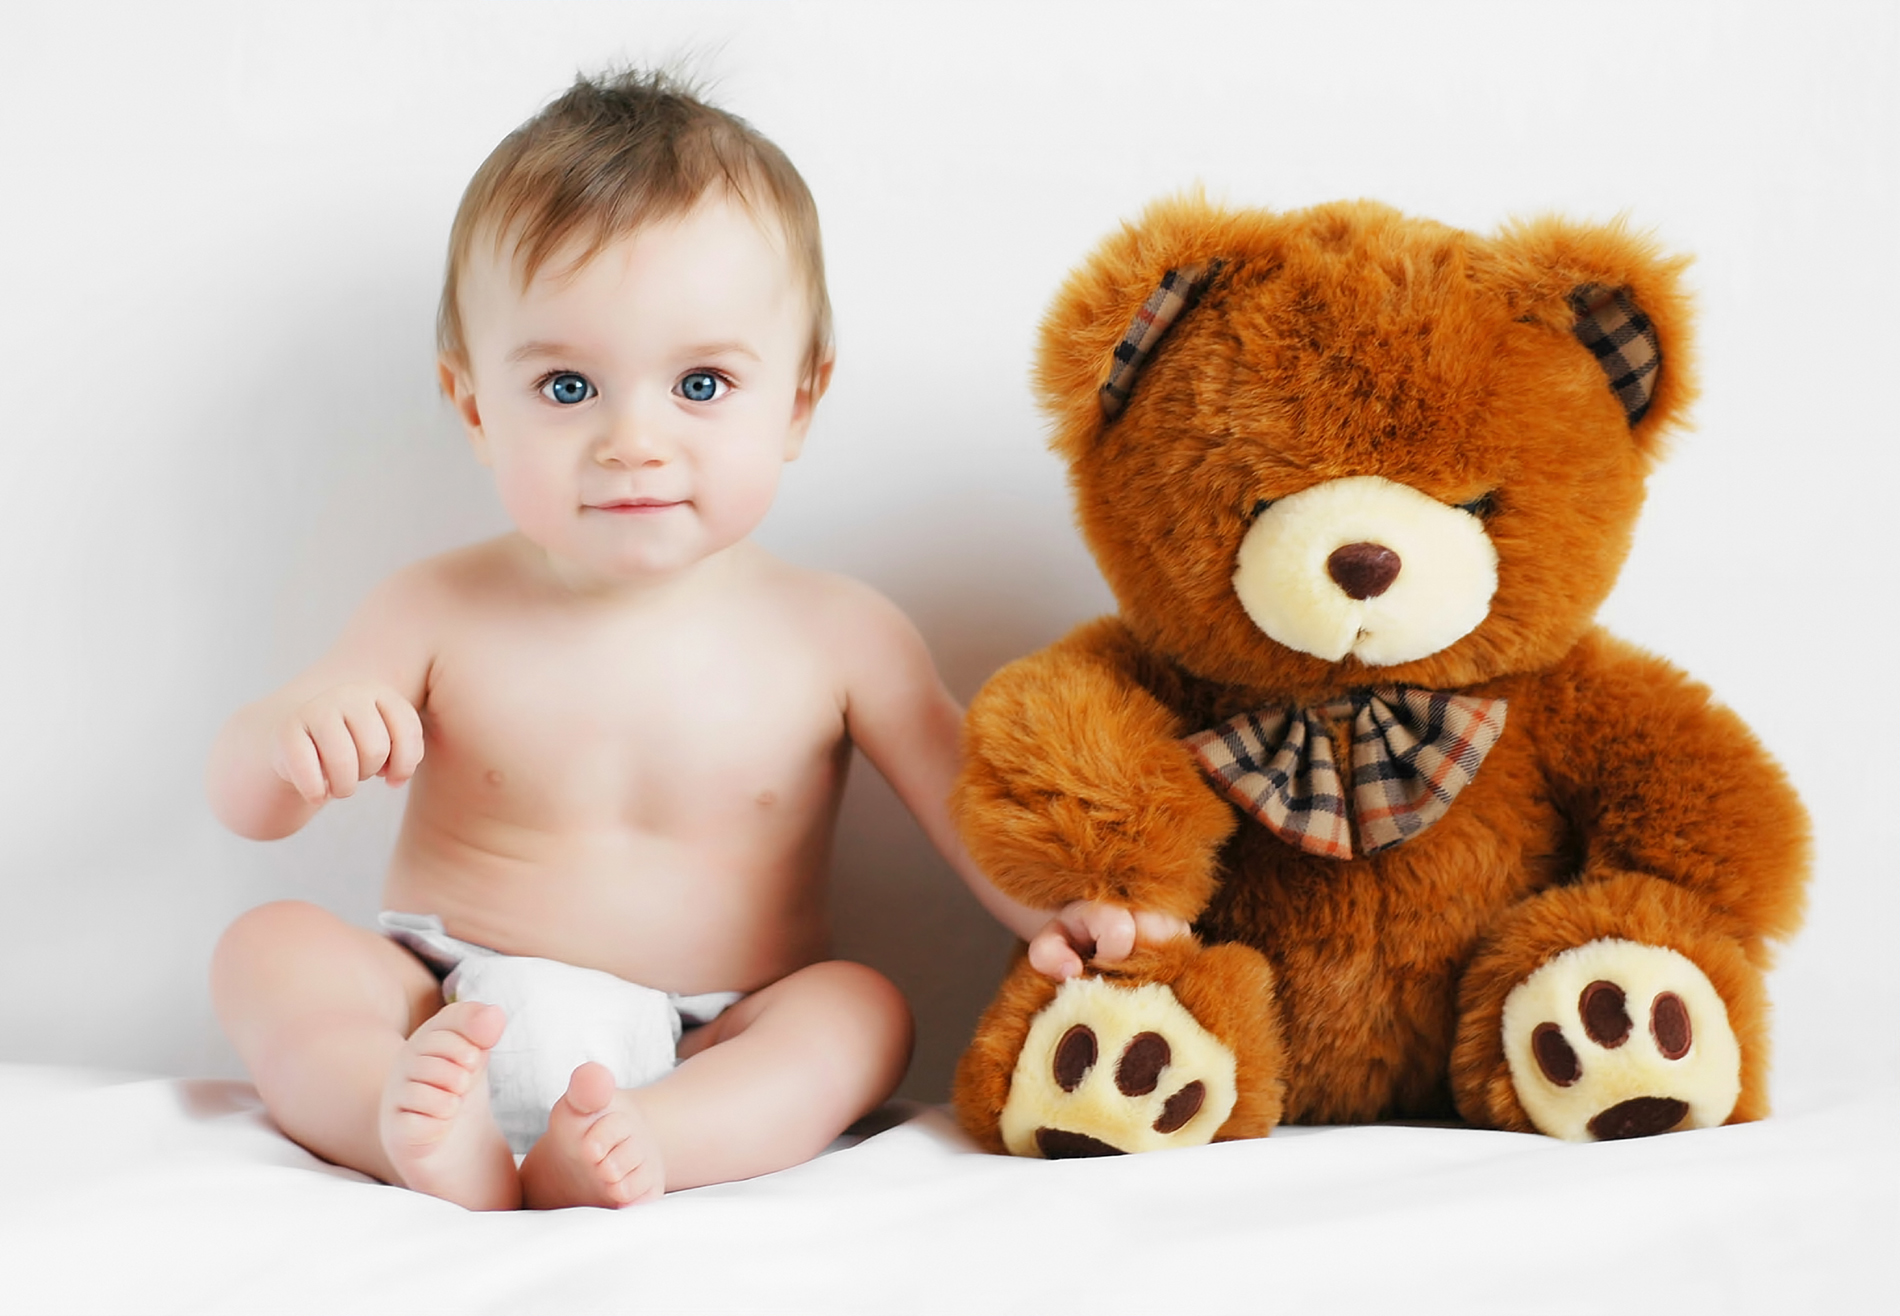 Cute baby with Teddy bear photo 52637